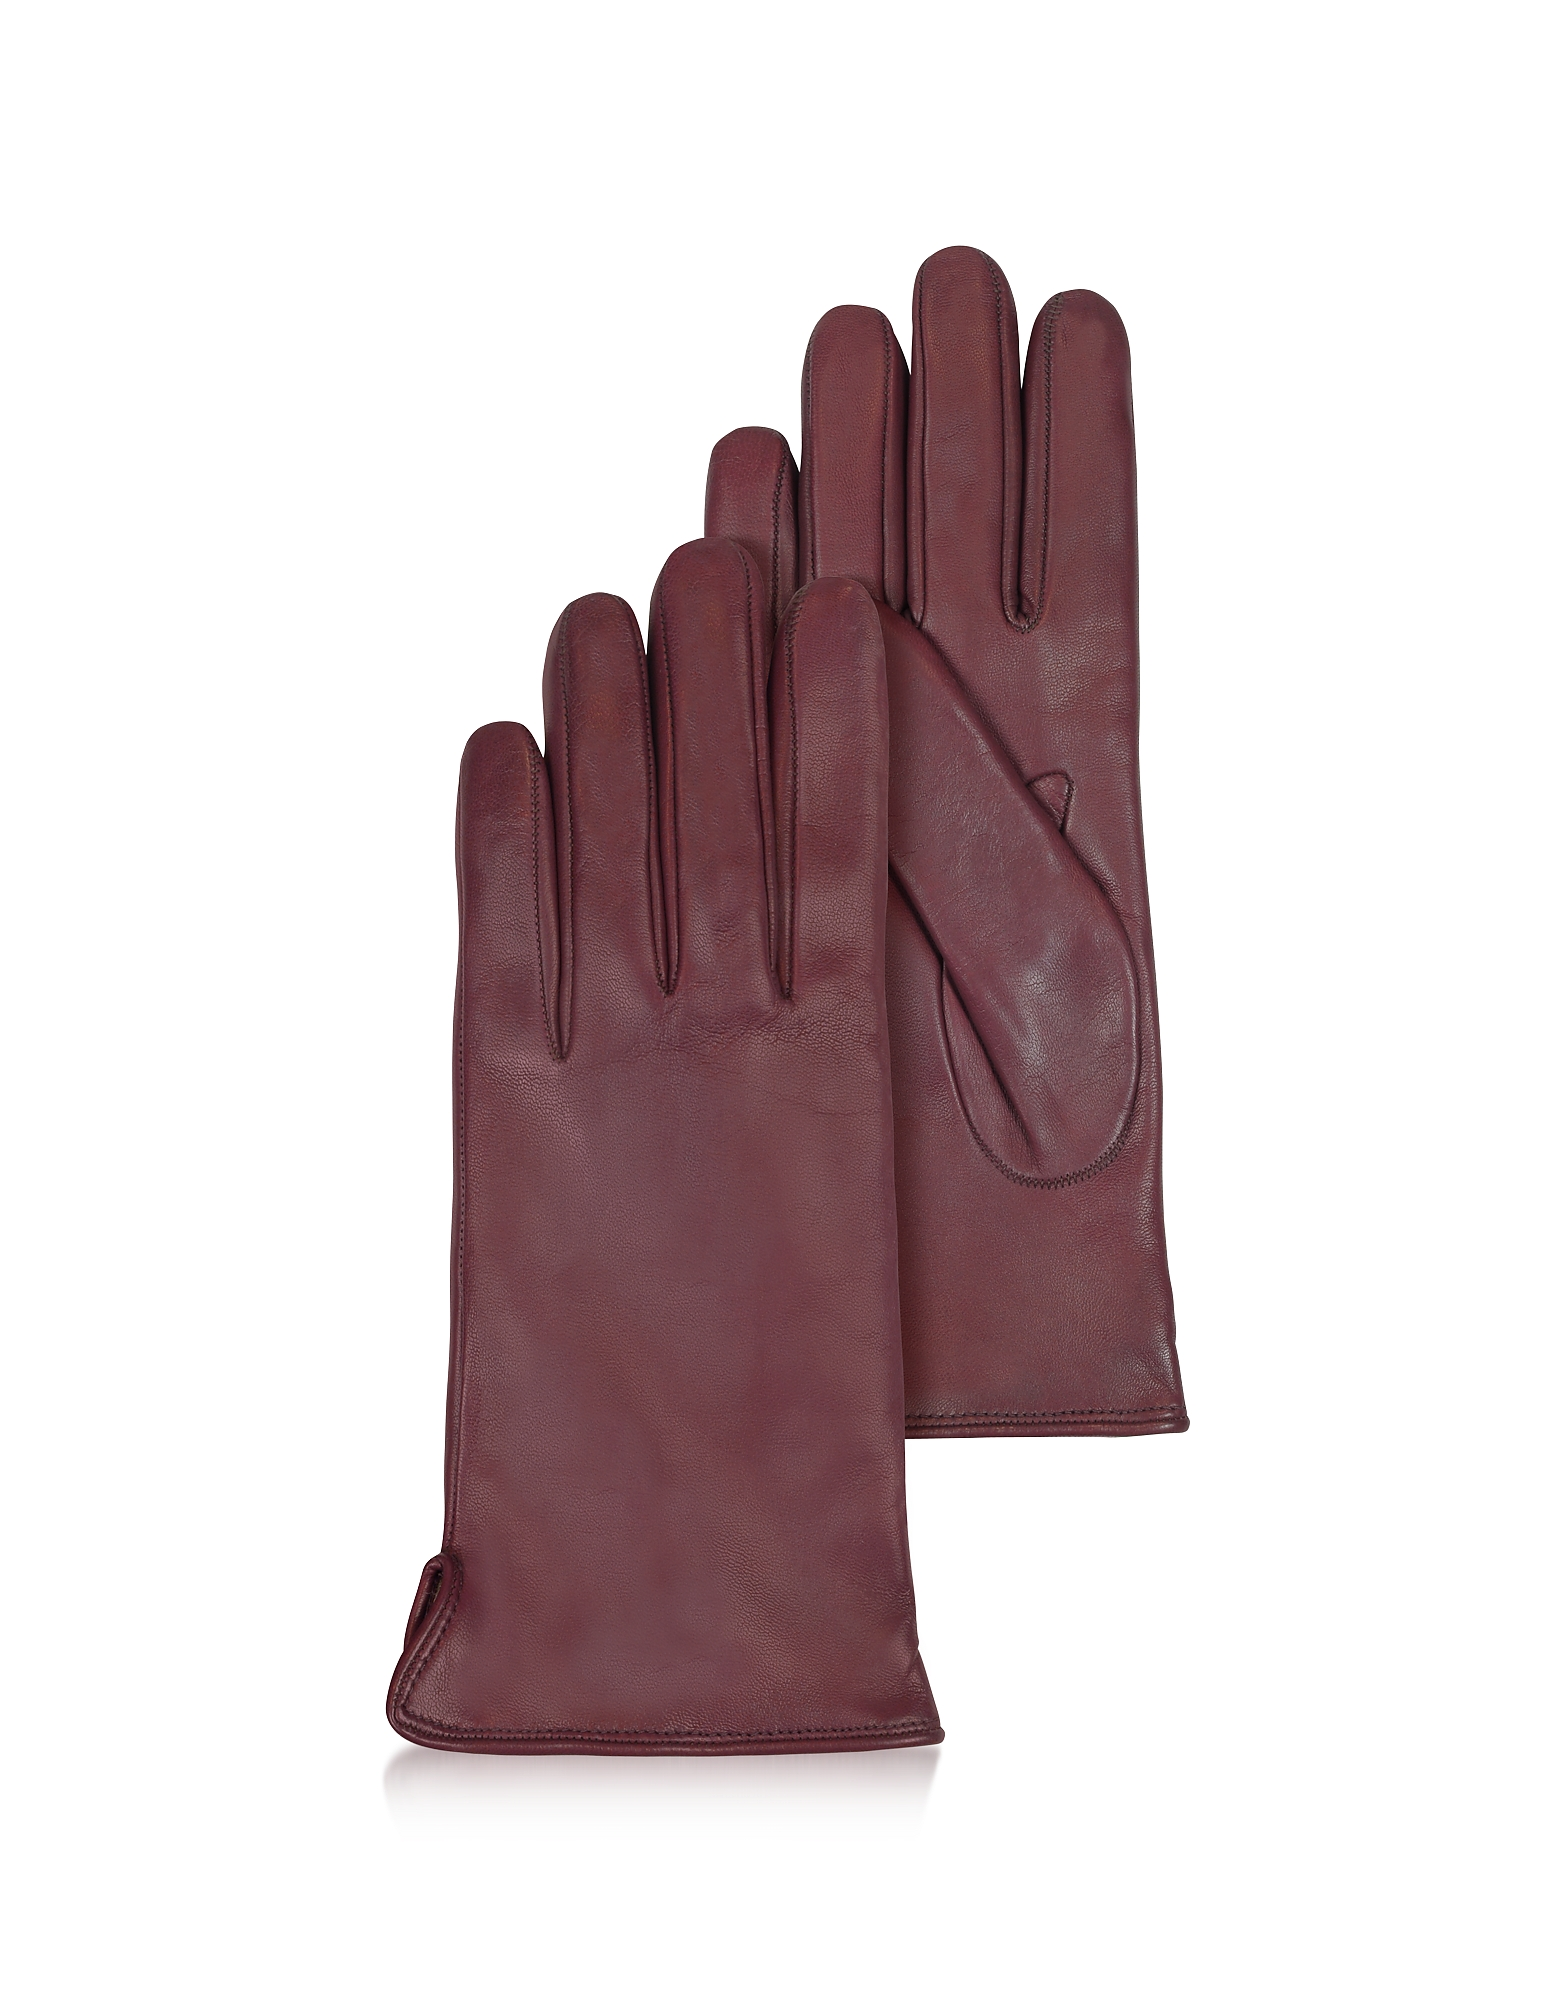 Forzieri Women's Gloves, Women's Burgundy Cashmere Lined Italian Leather Gloves